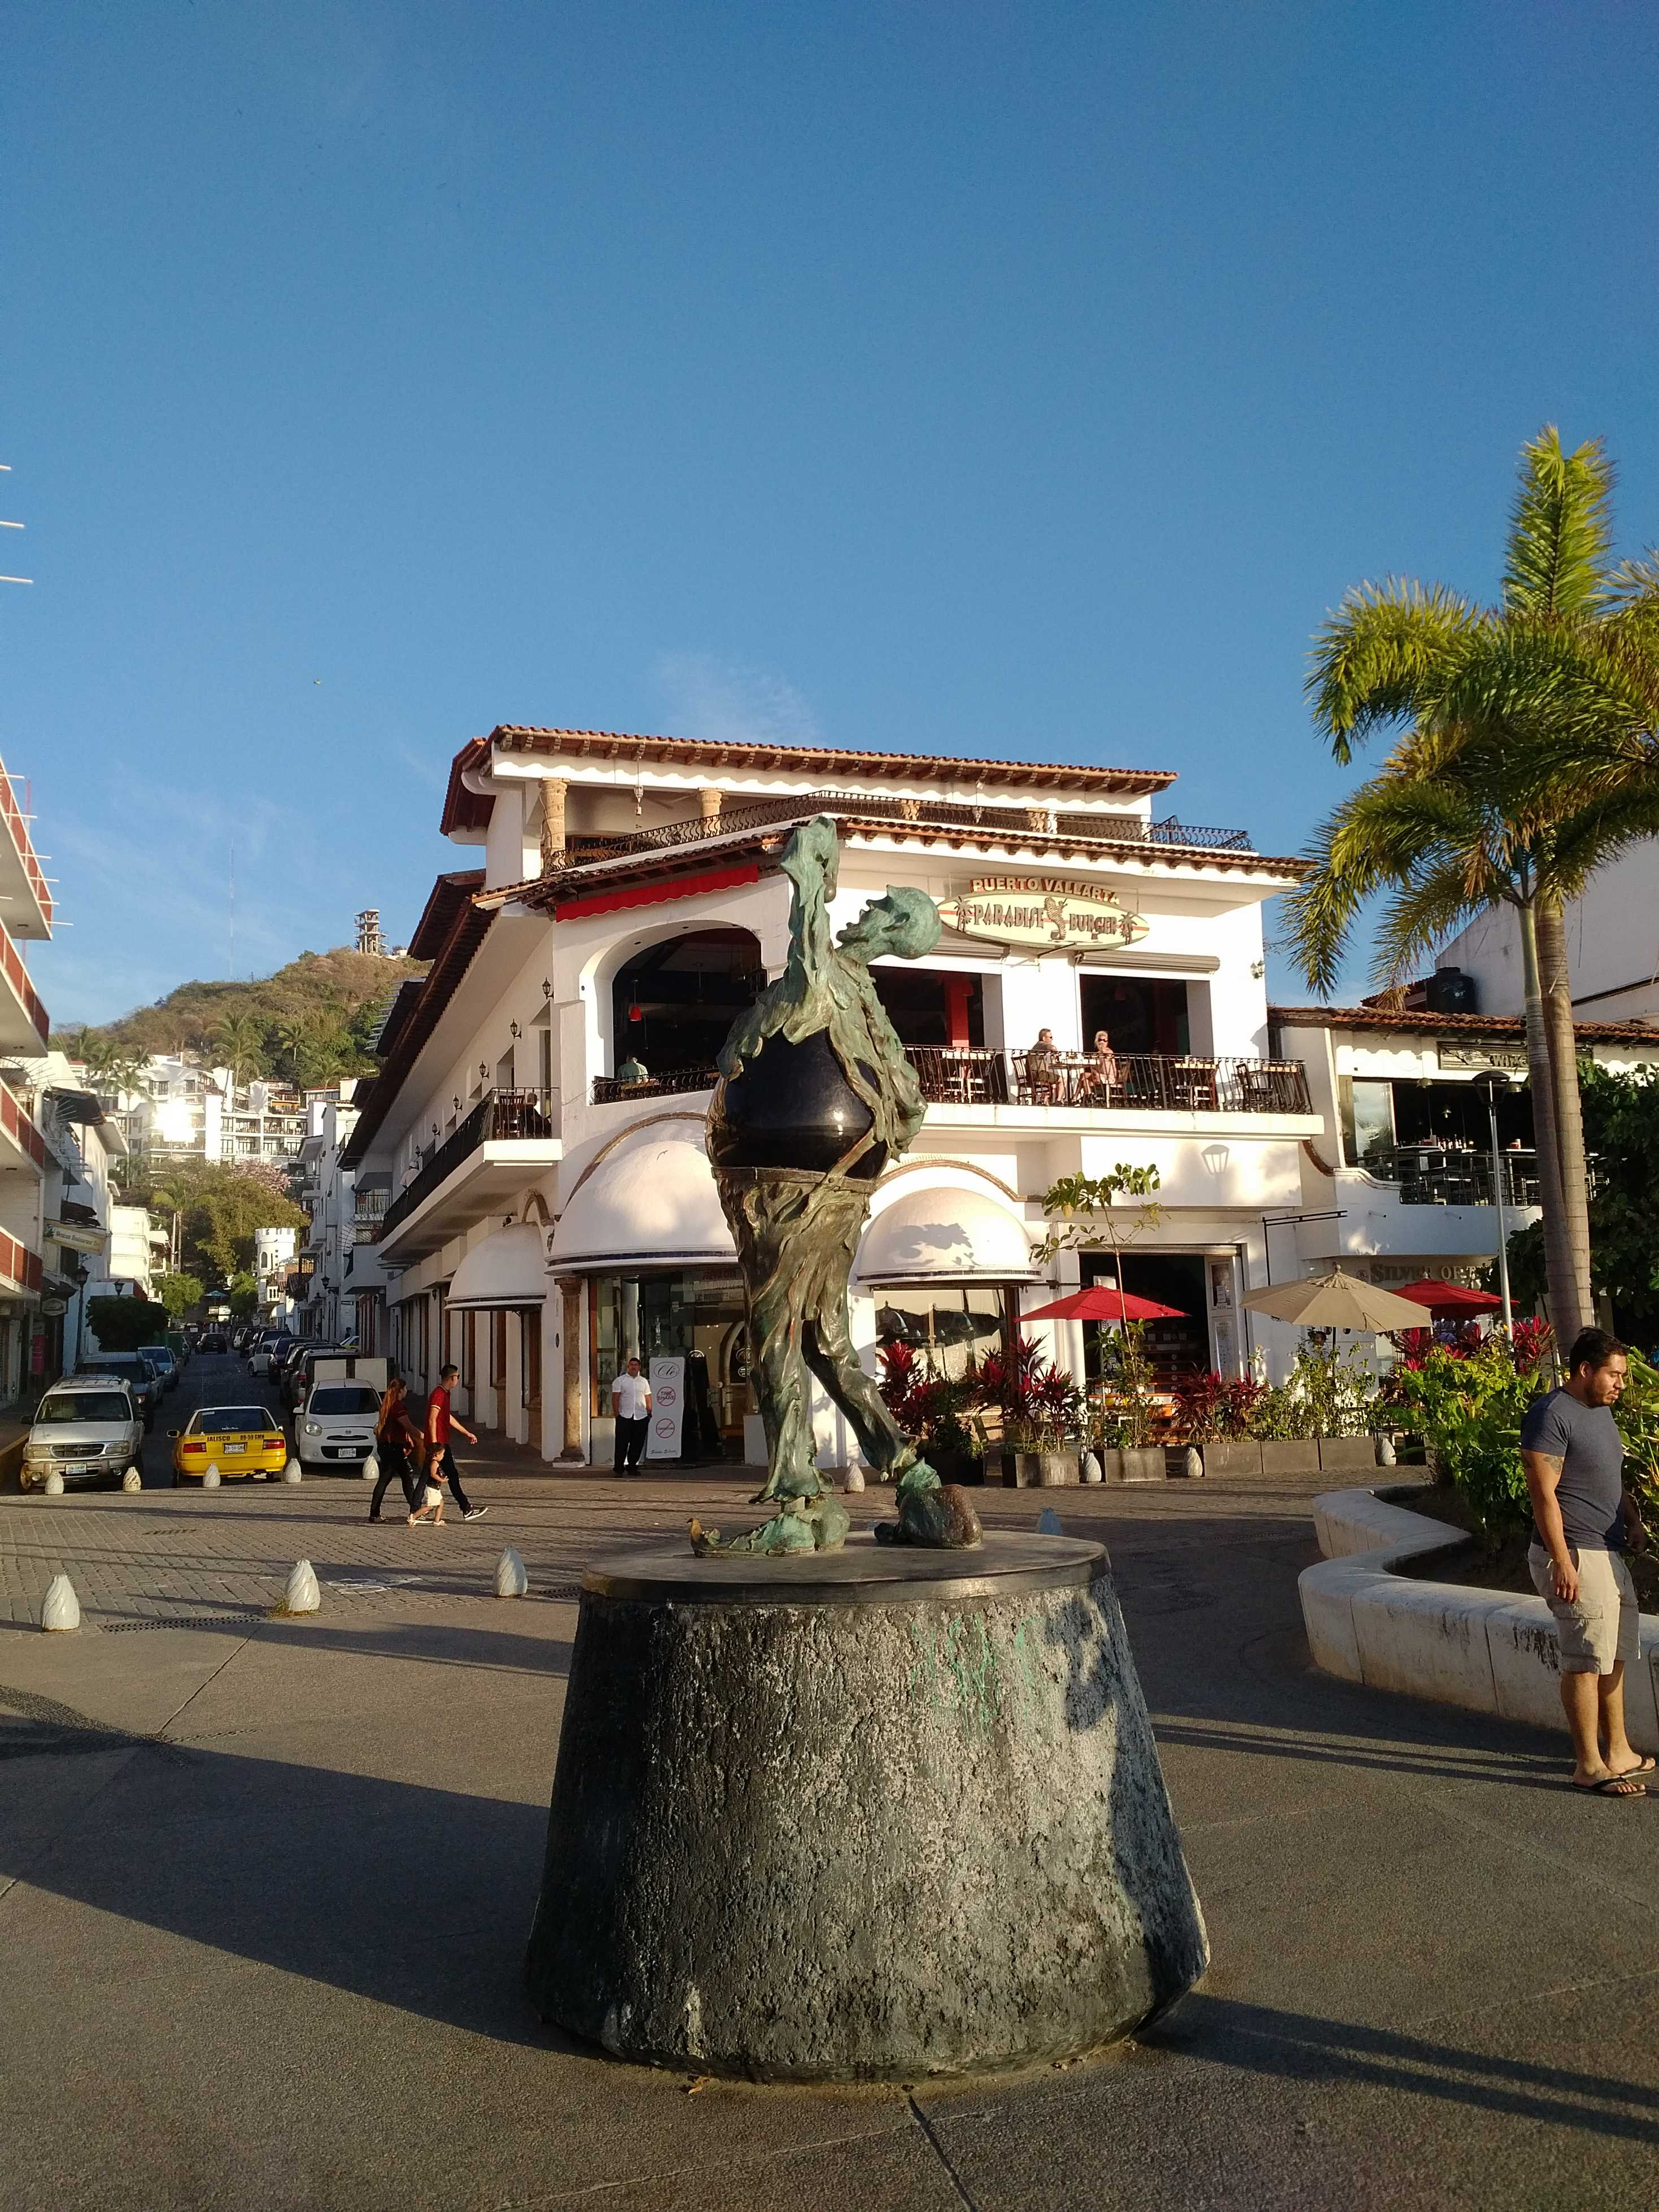 One of the many statues on the Malecon, Puerto Vallarta